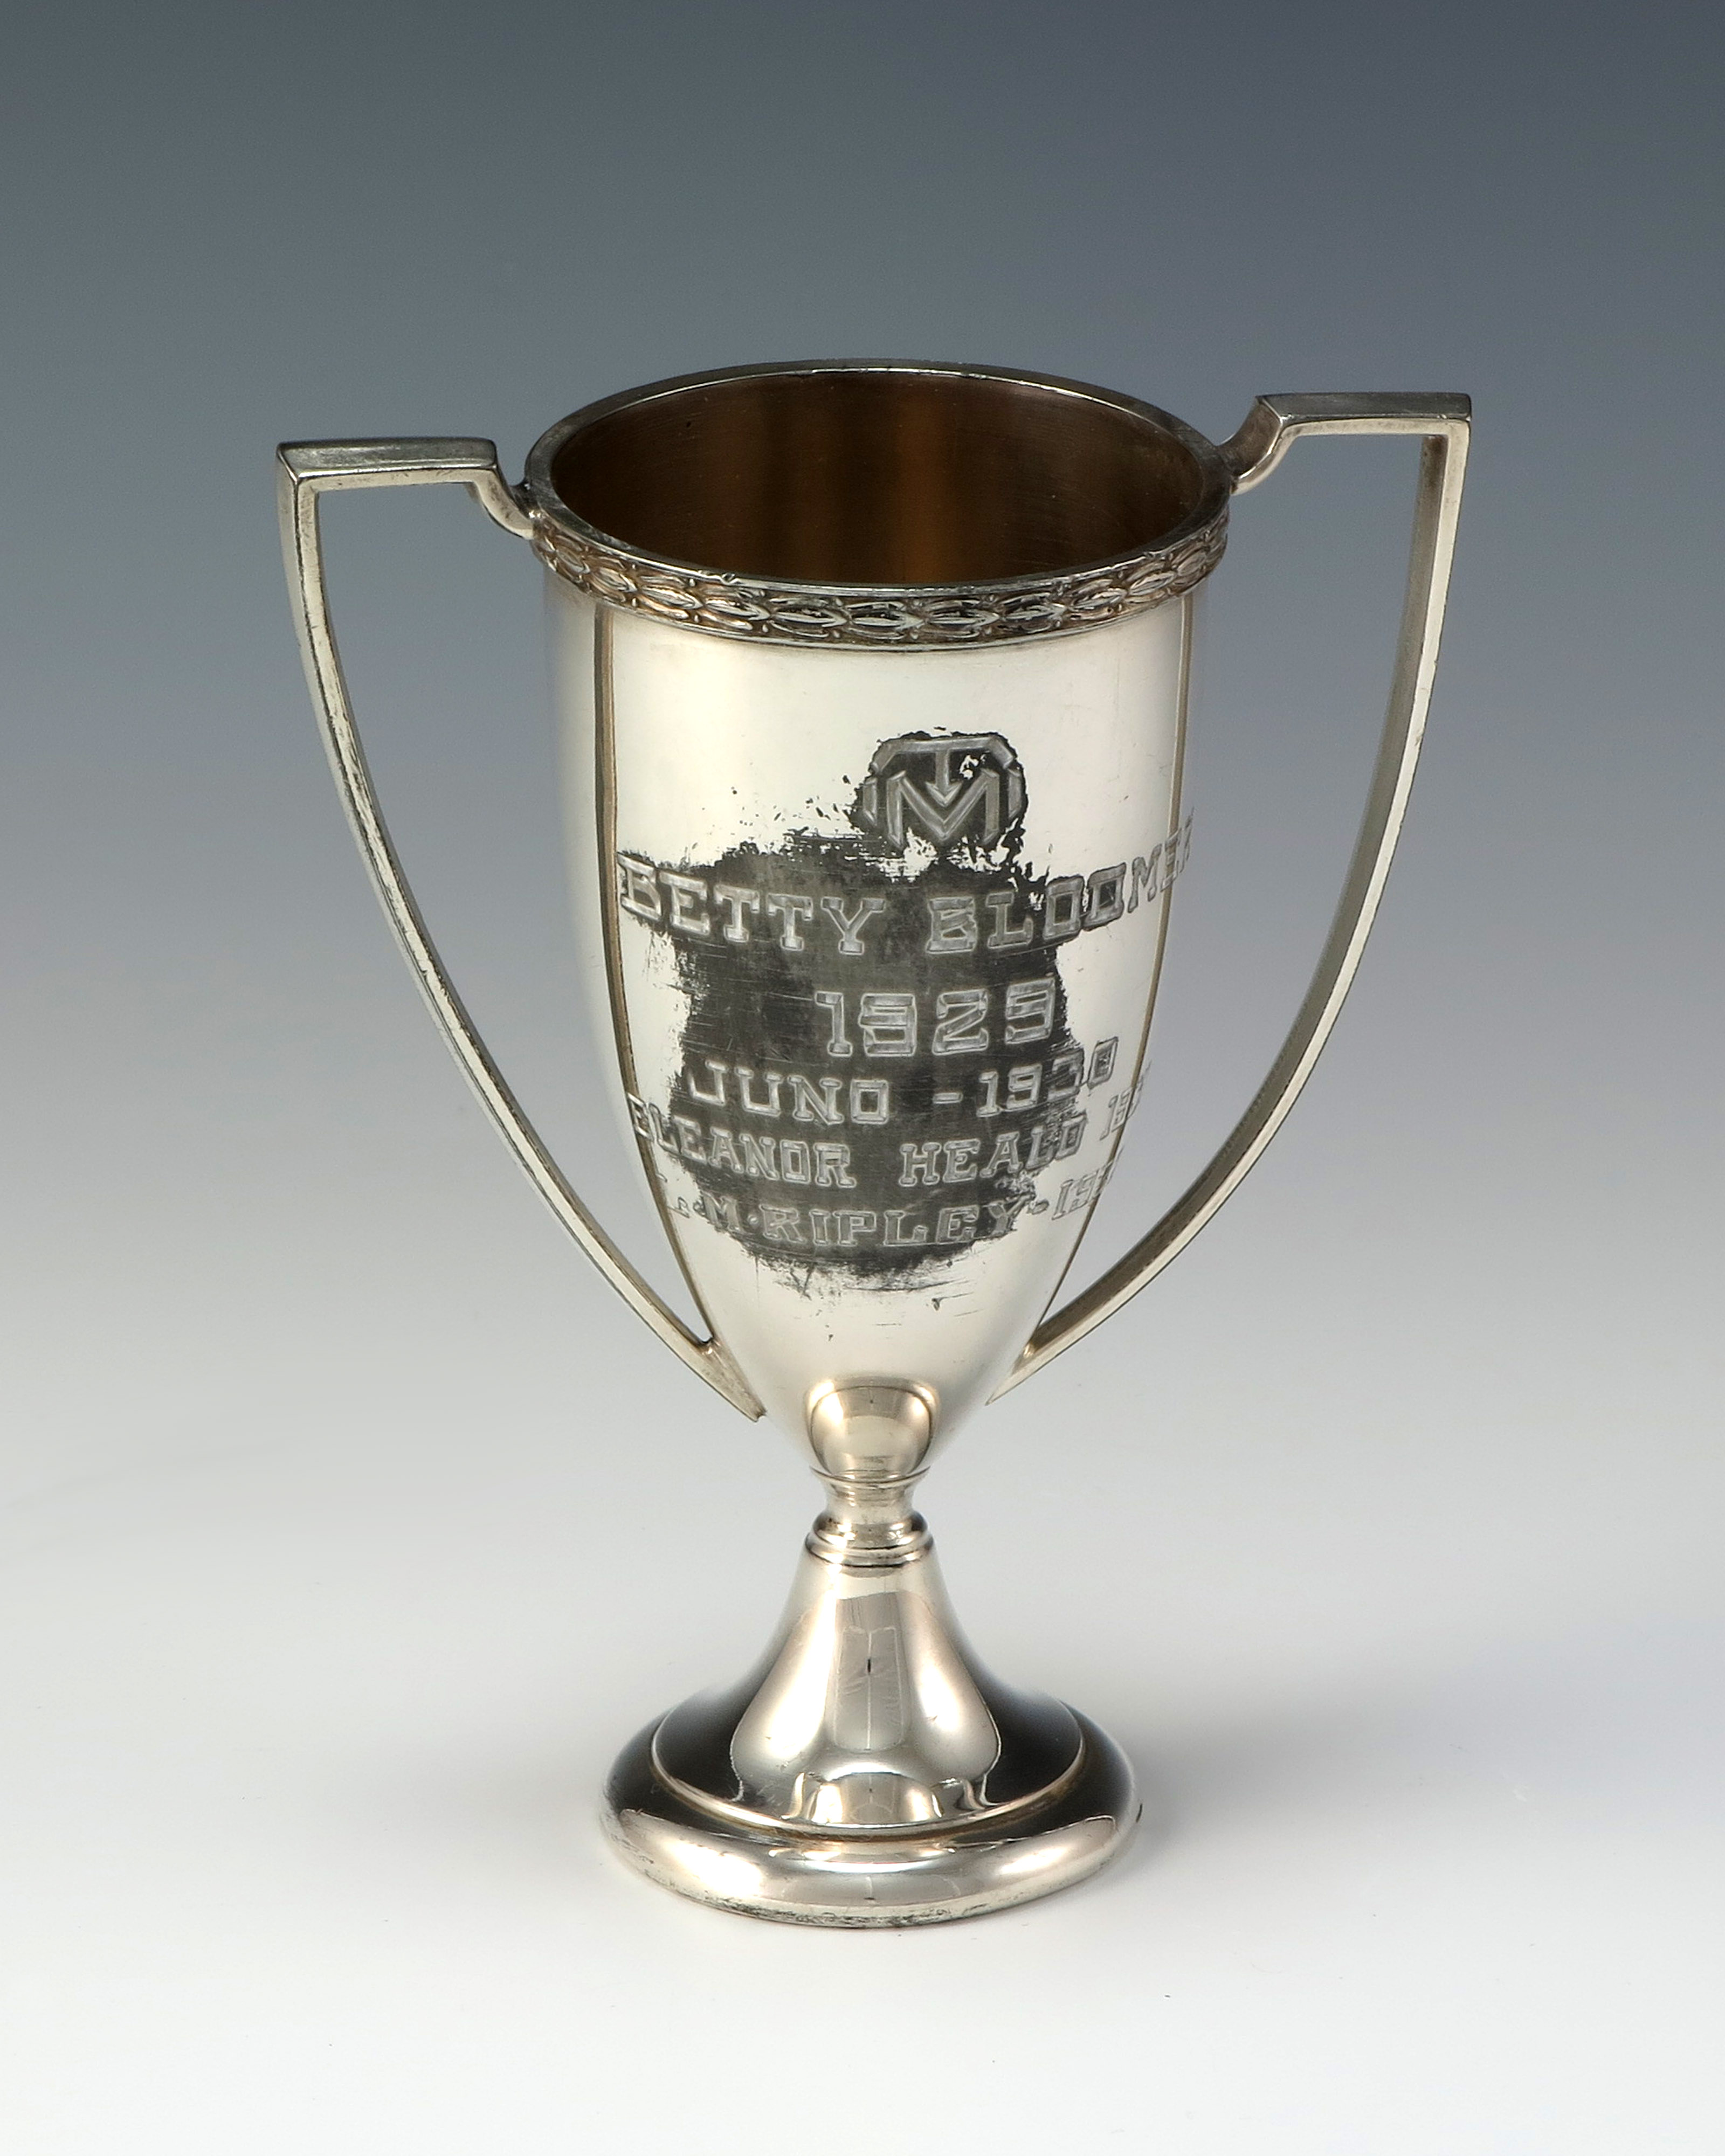 File:Betty Ford's tennis trophy.JPG - Wikimedia Commons